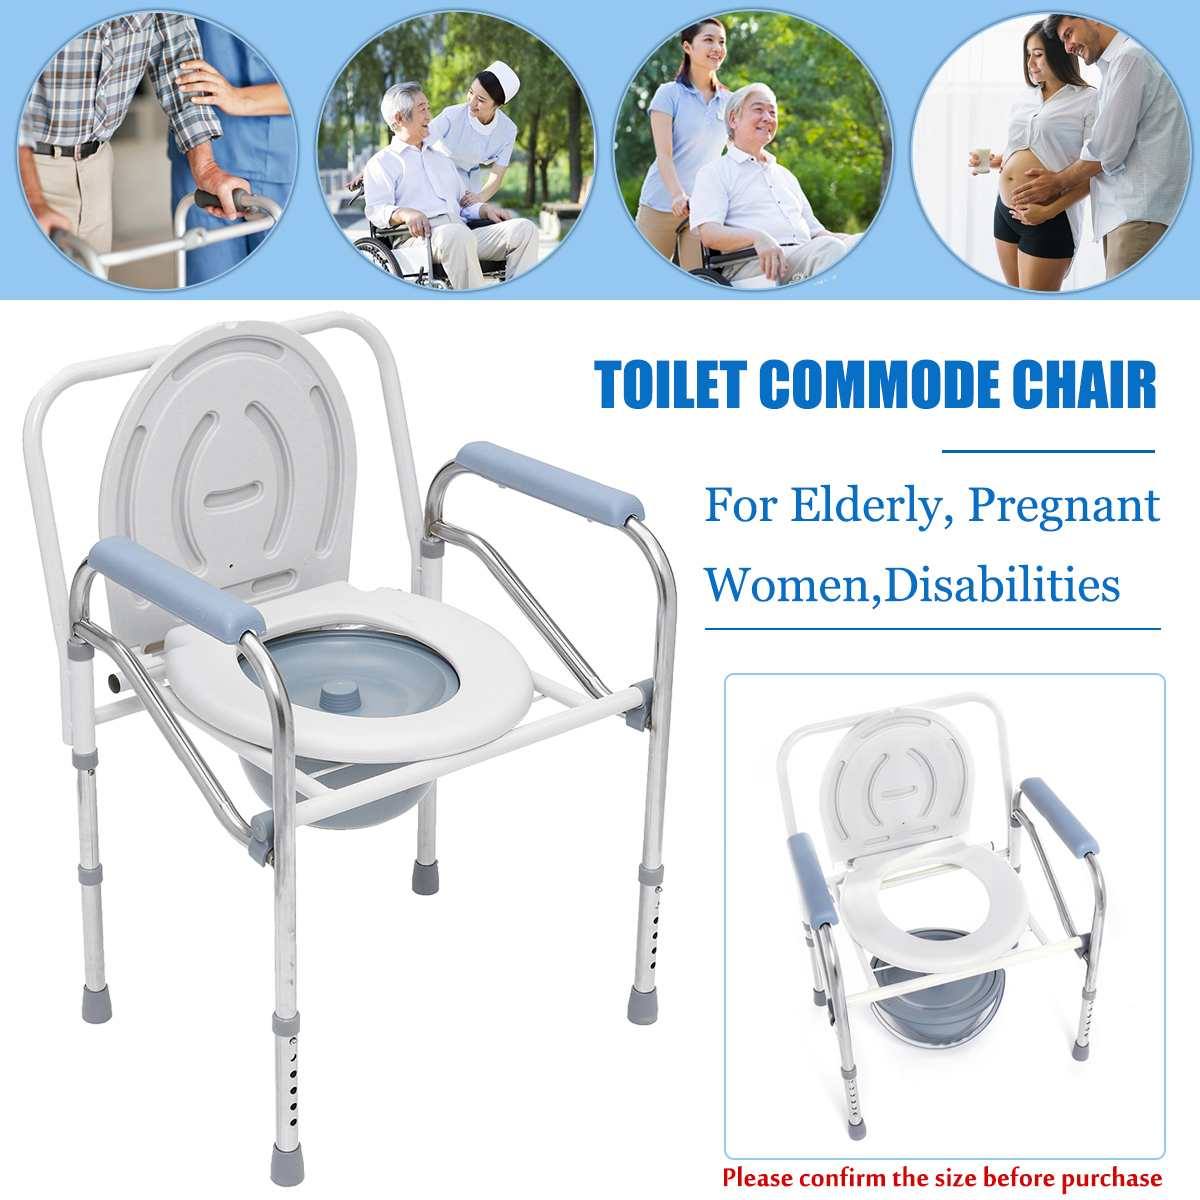 New Portable Foldable Potty Chair Toilet Adjustable Commode Chair Closestool Chamber Pot For Elderly Men Women Stainless Steel